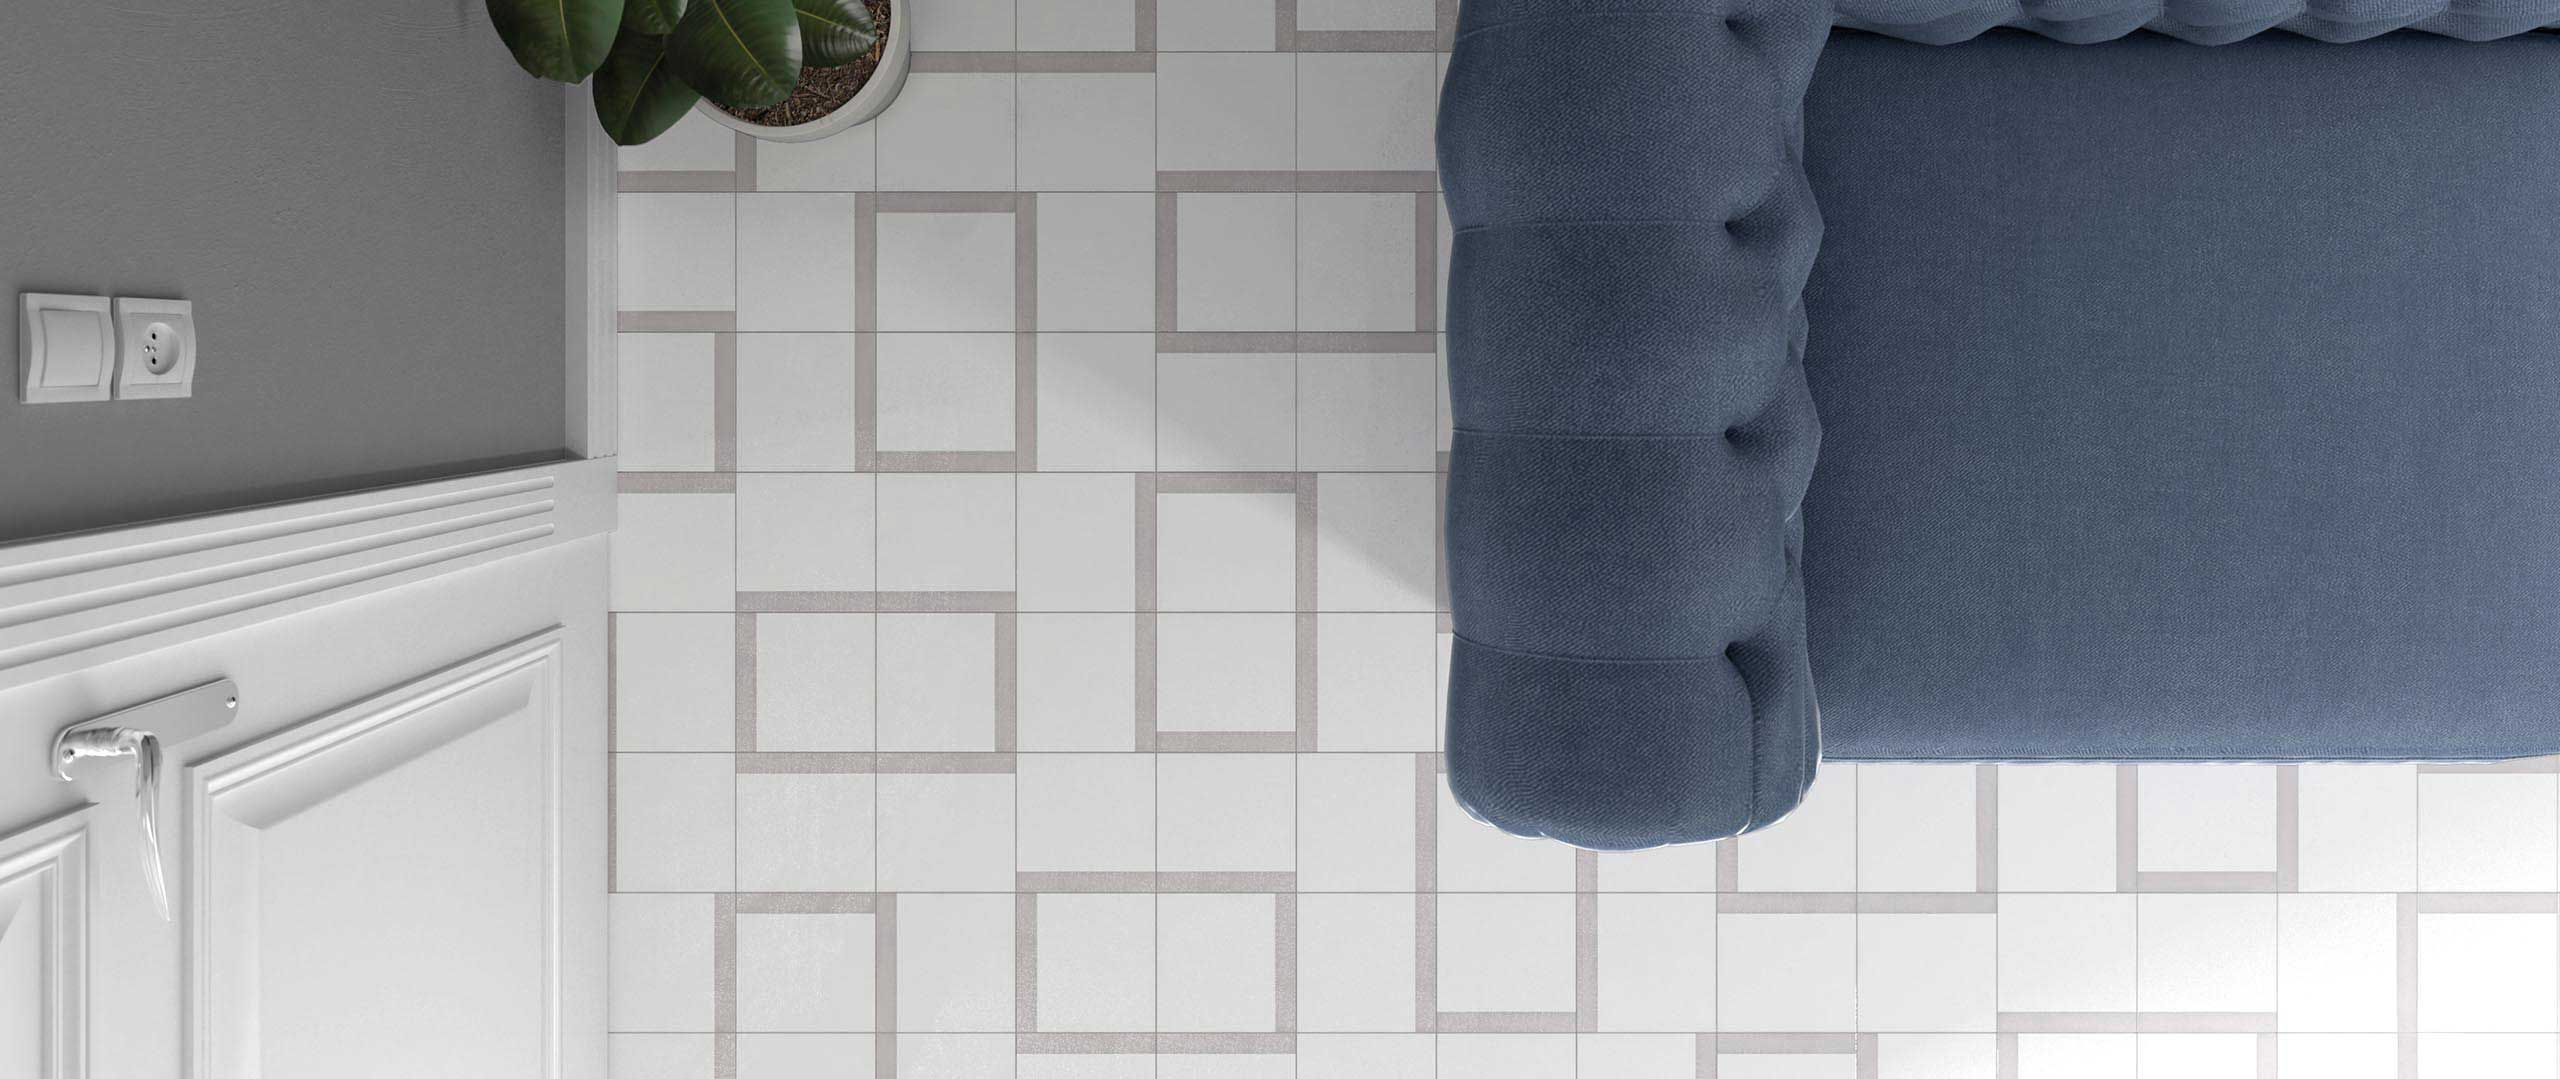 Indoor tile / outdoor / wall / floor - Boreal Band Decor - WOW Design EU